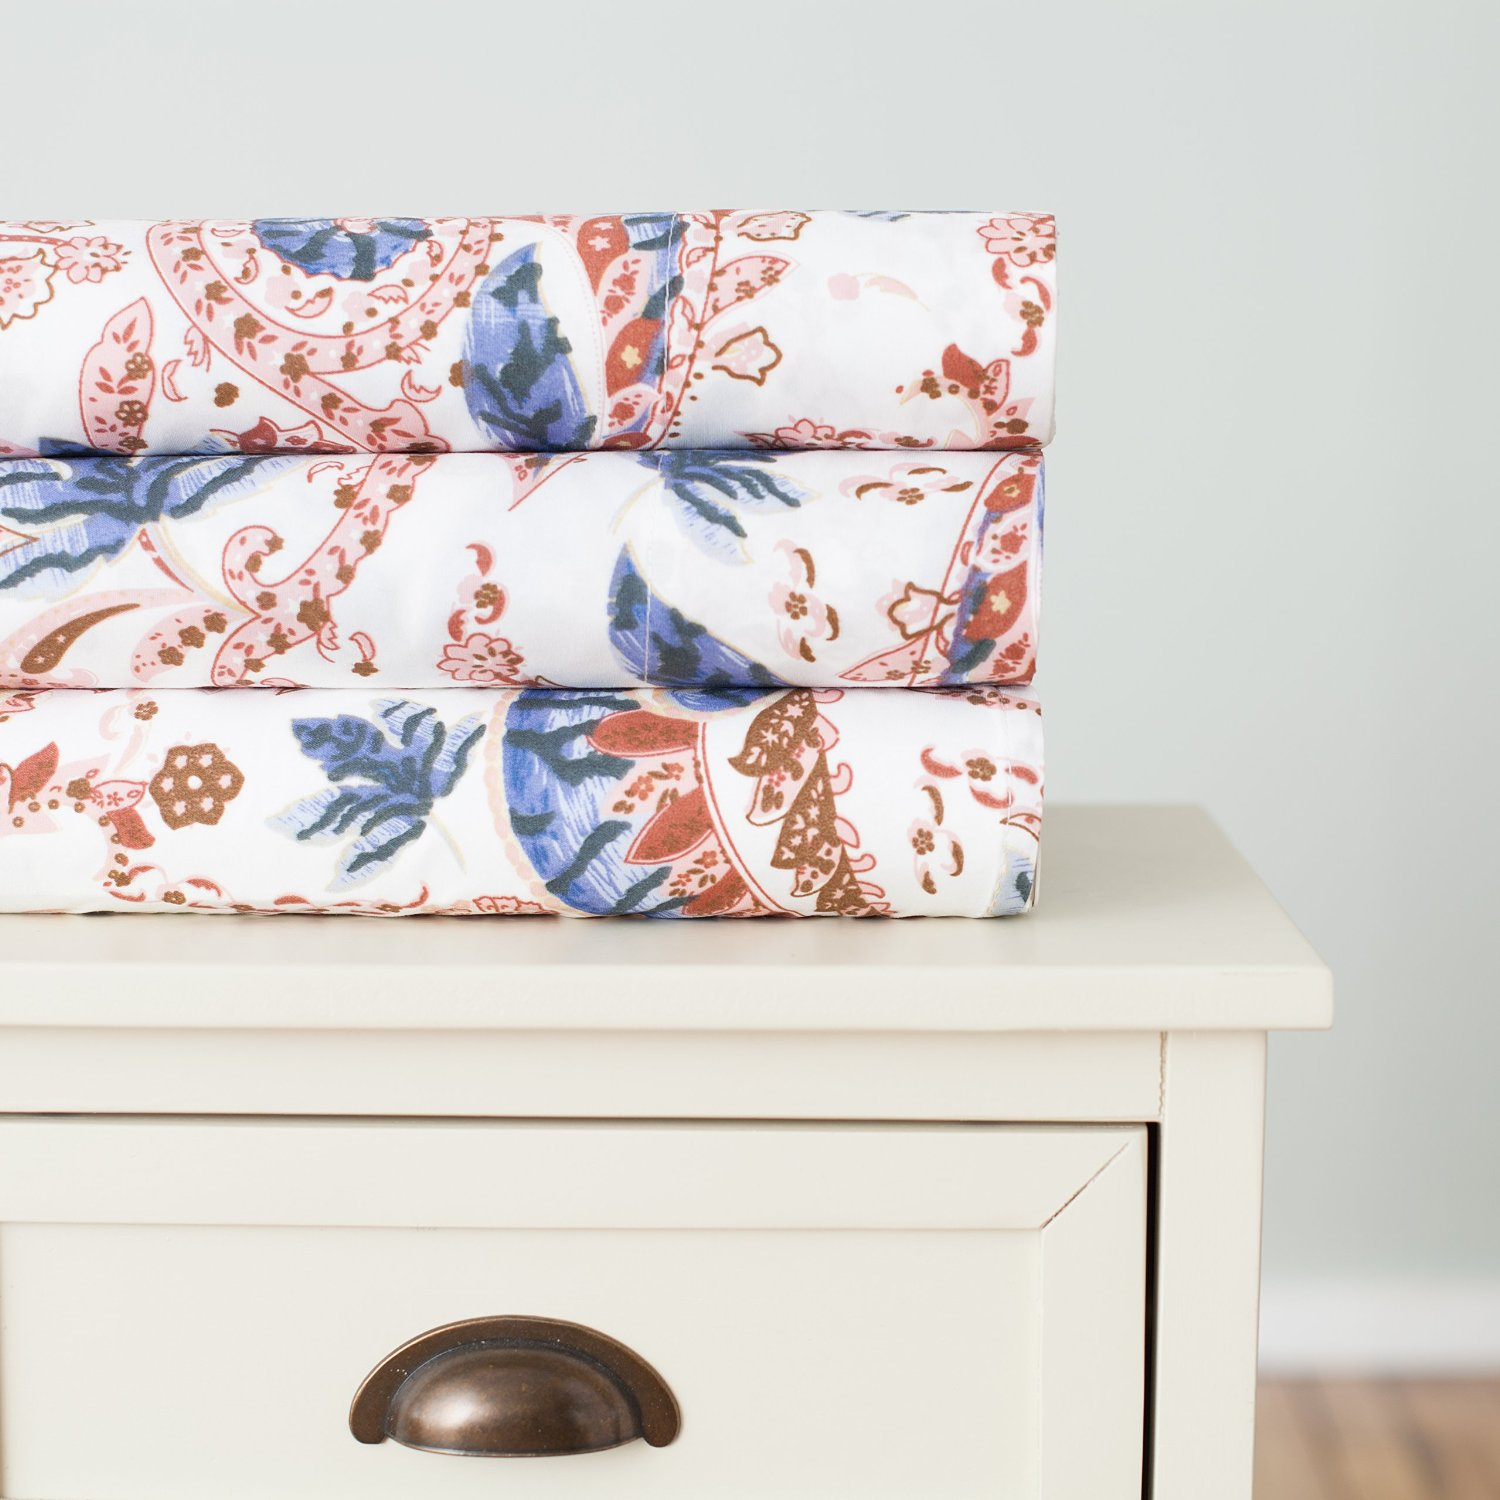 Analisa Collection Super Soft Double Brushed Microfiber Printed Luxury Sheet Set By Home Fashion Designs (Twin, Blue/Brown Paisley)